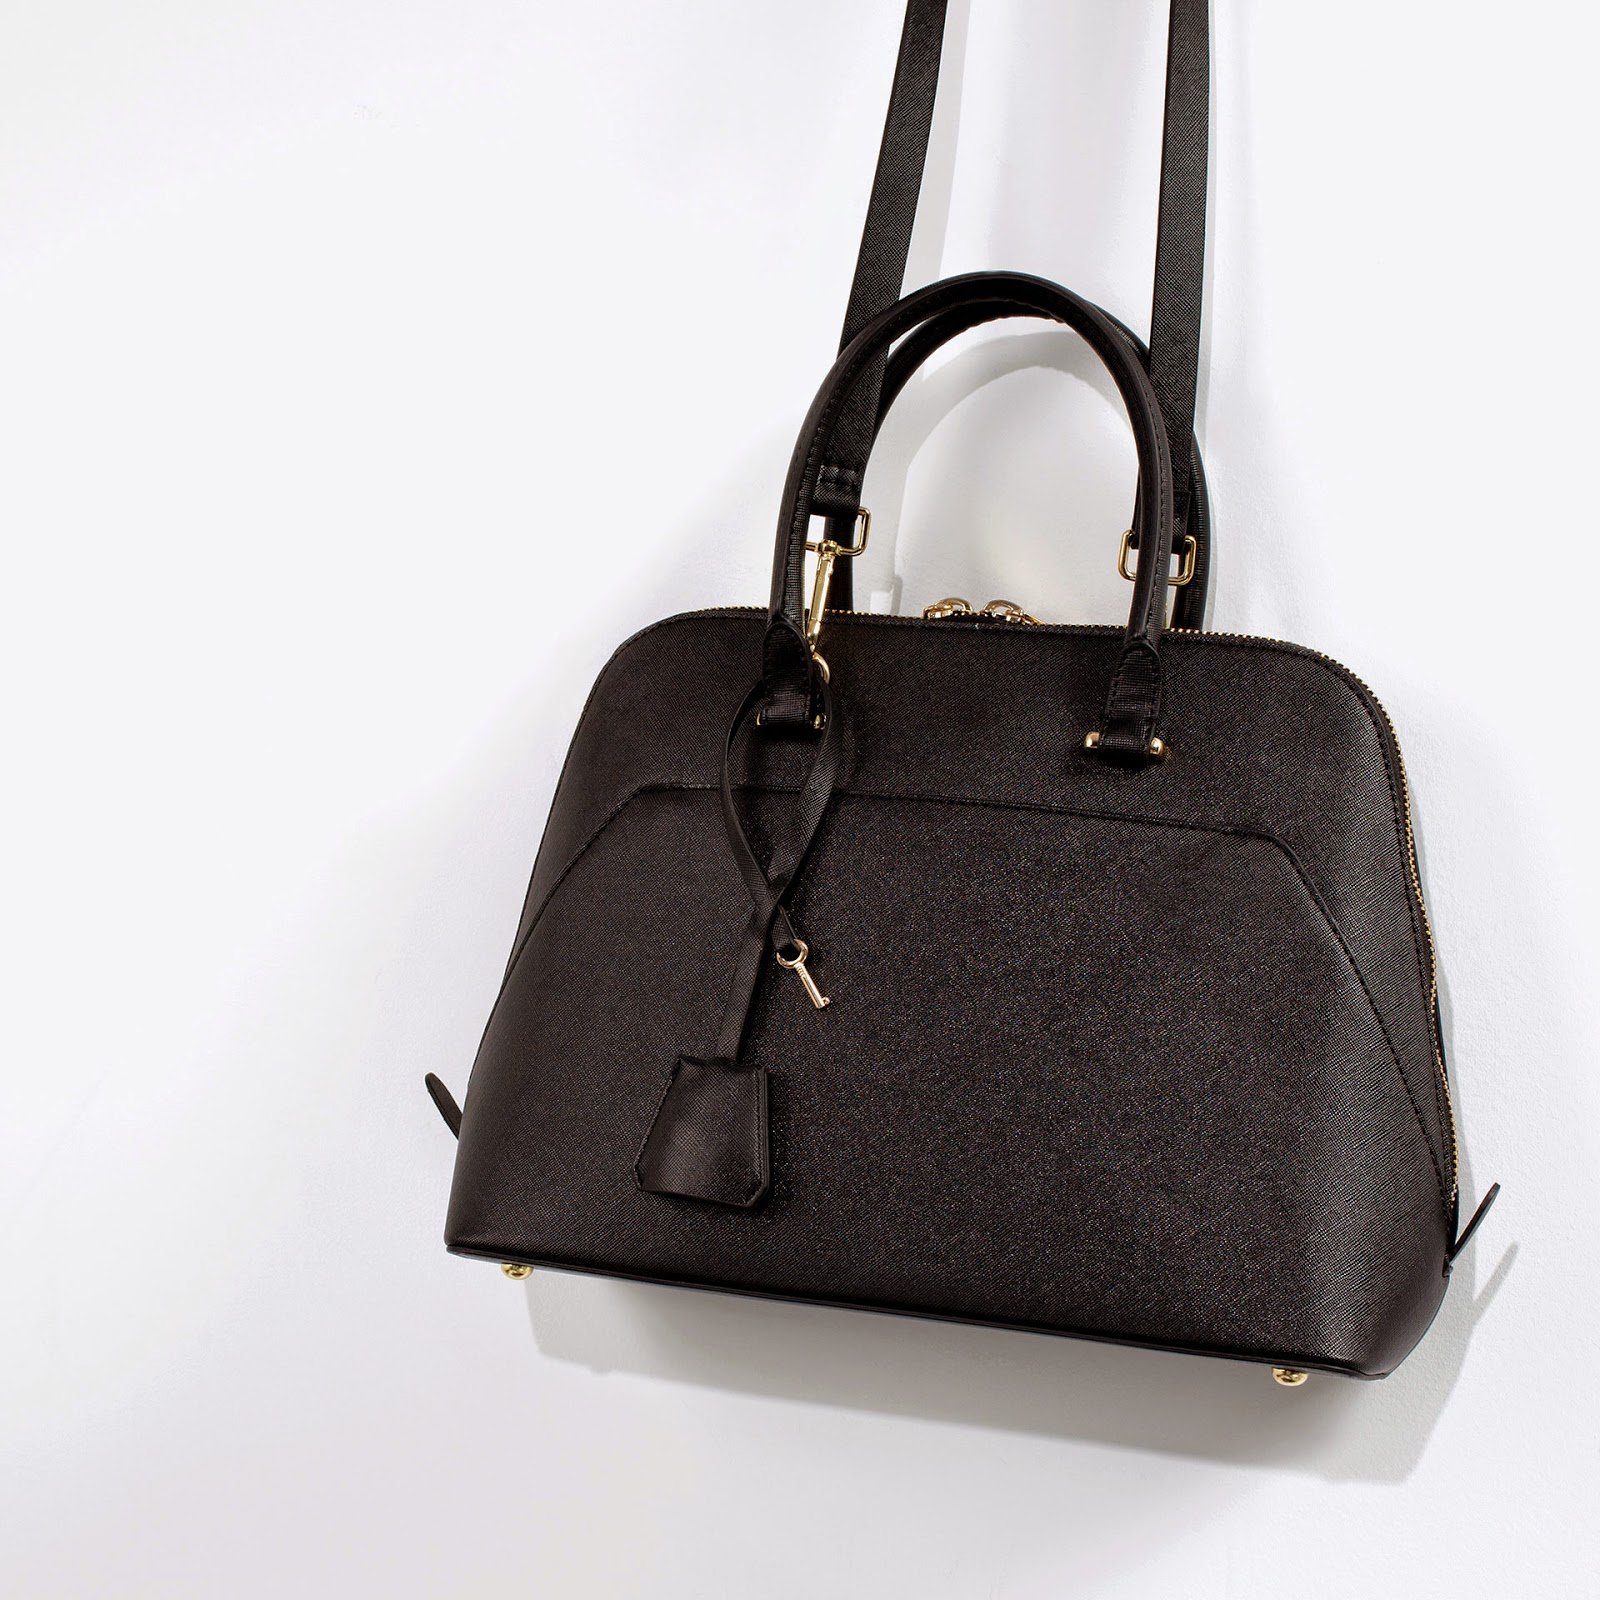 http://www.zara.com/uk/en/woman/handbags/hand-bags/mini-citybag-c269201p1984438.html